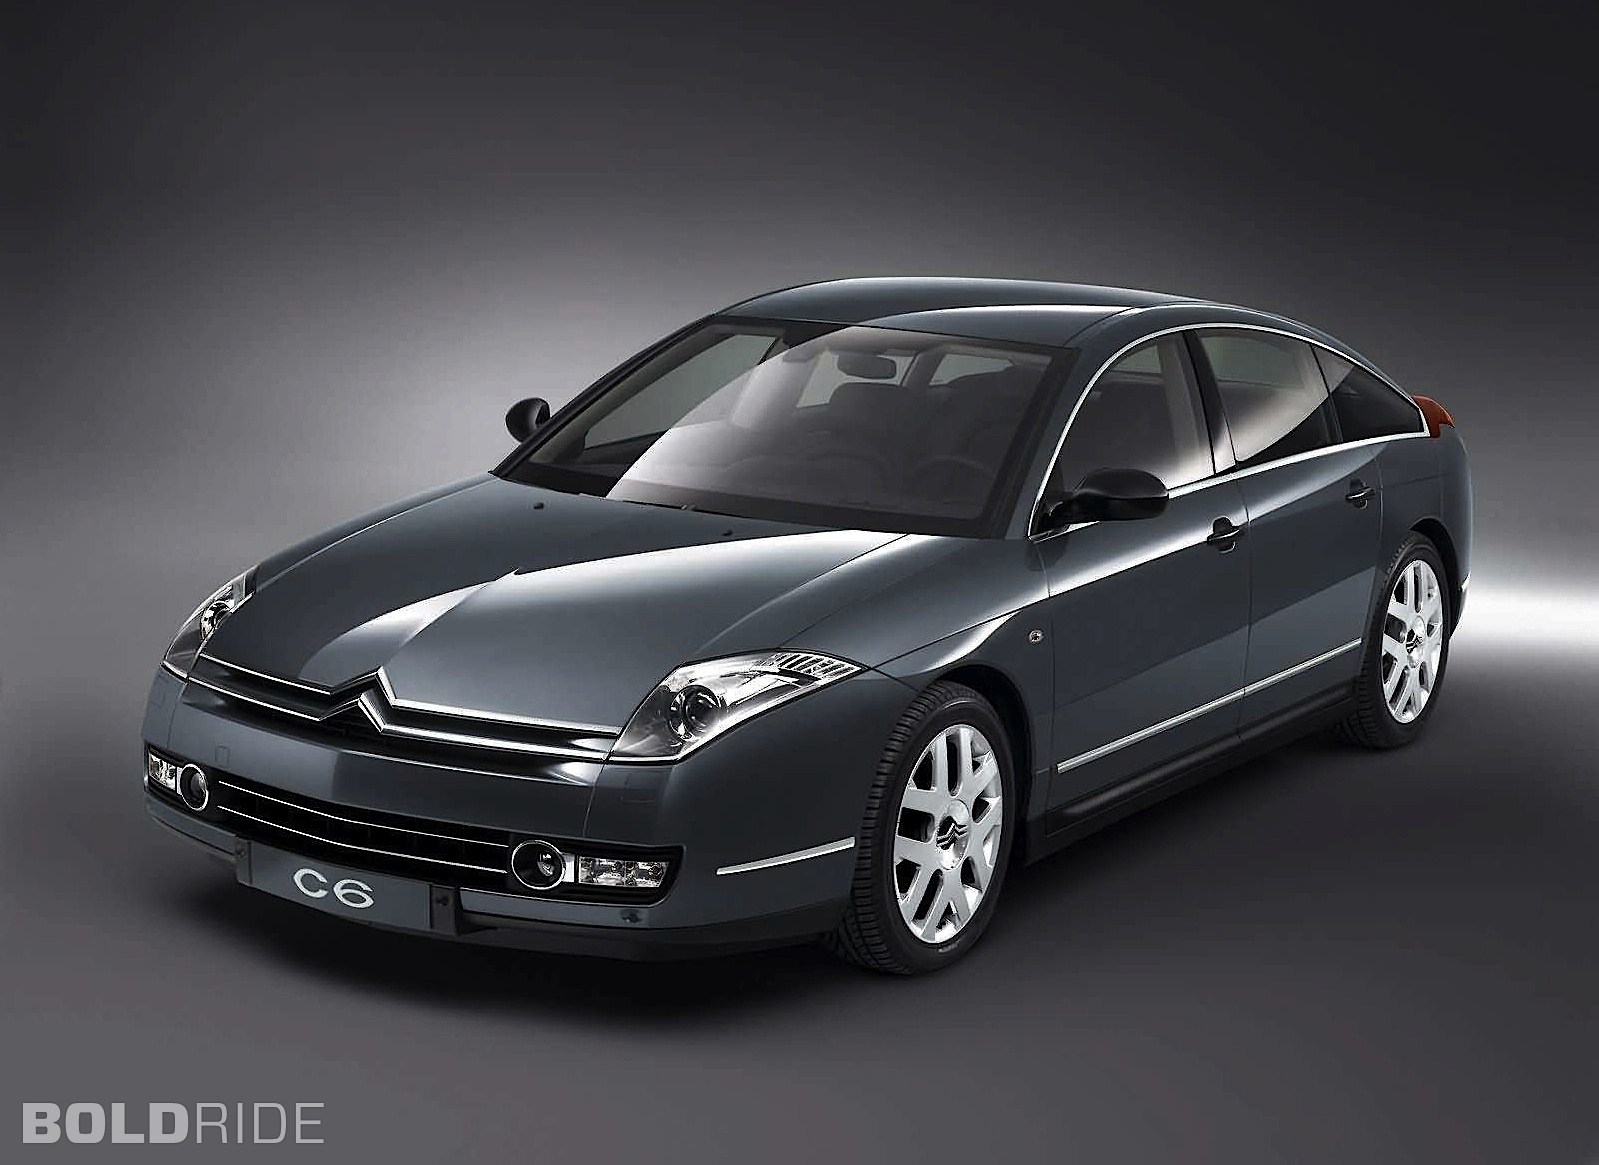 CITROEN C6 brown